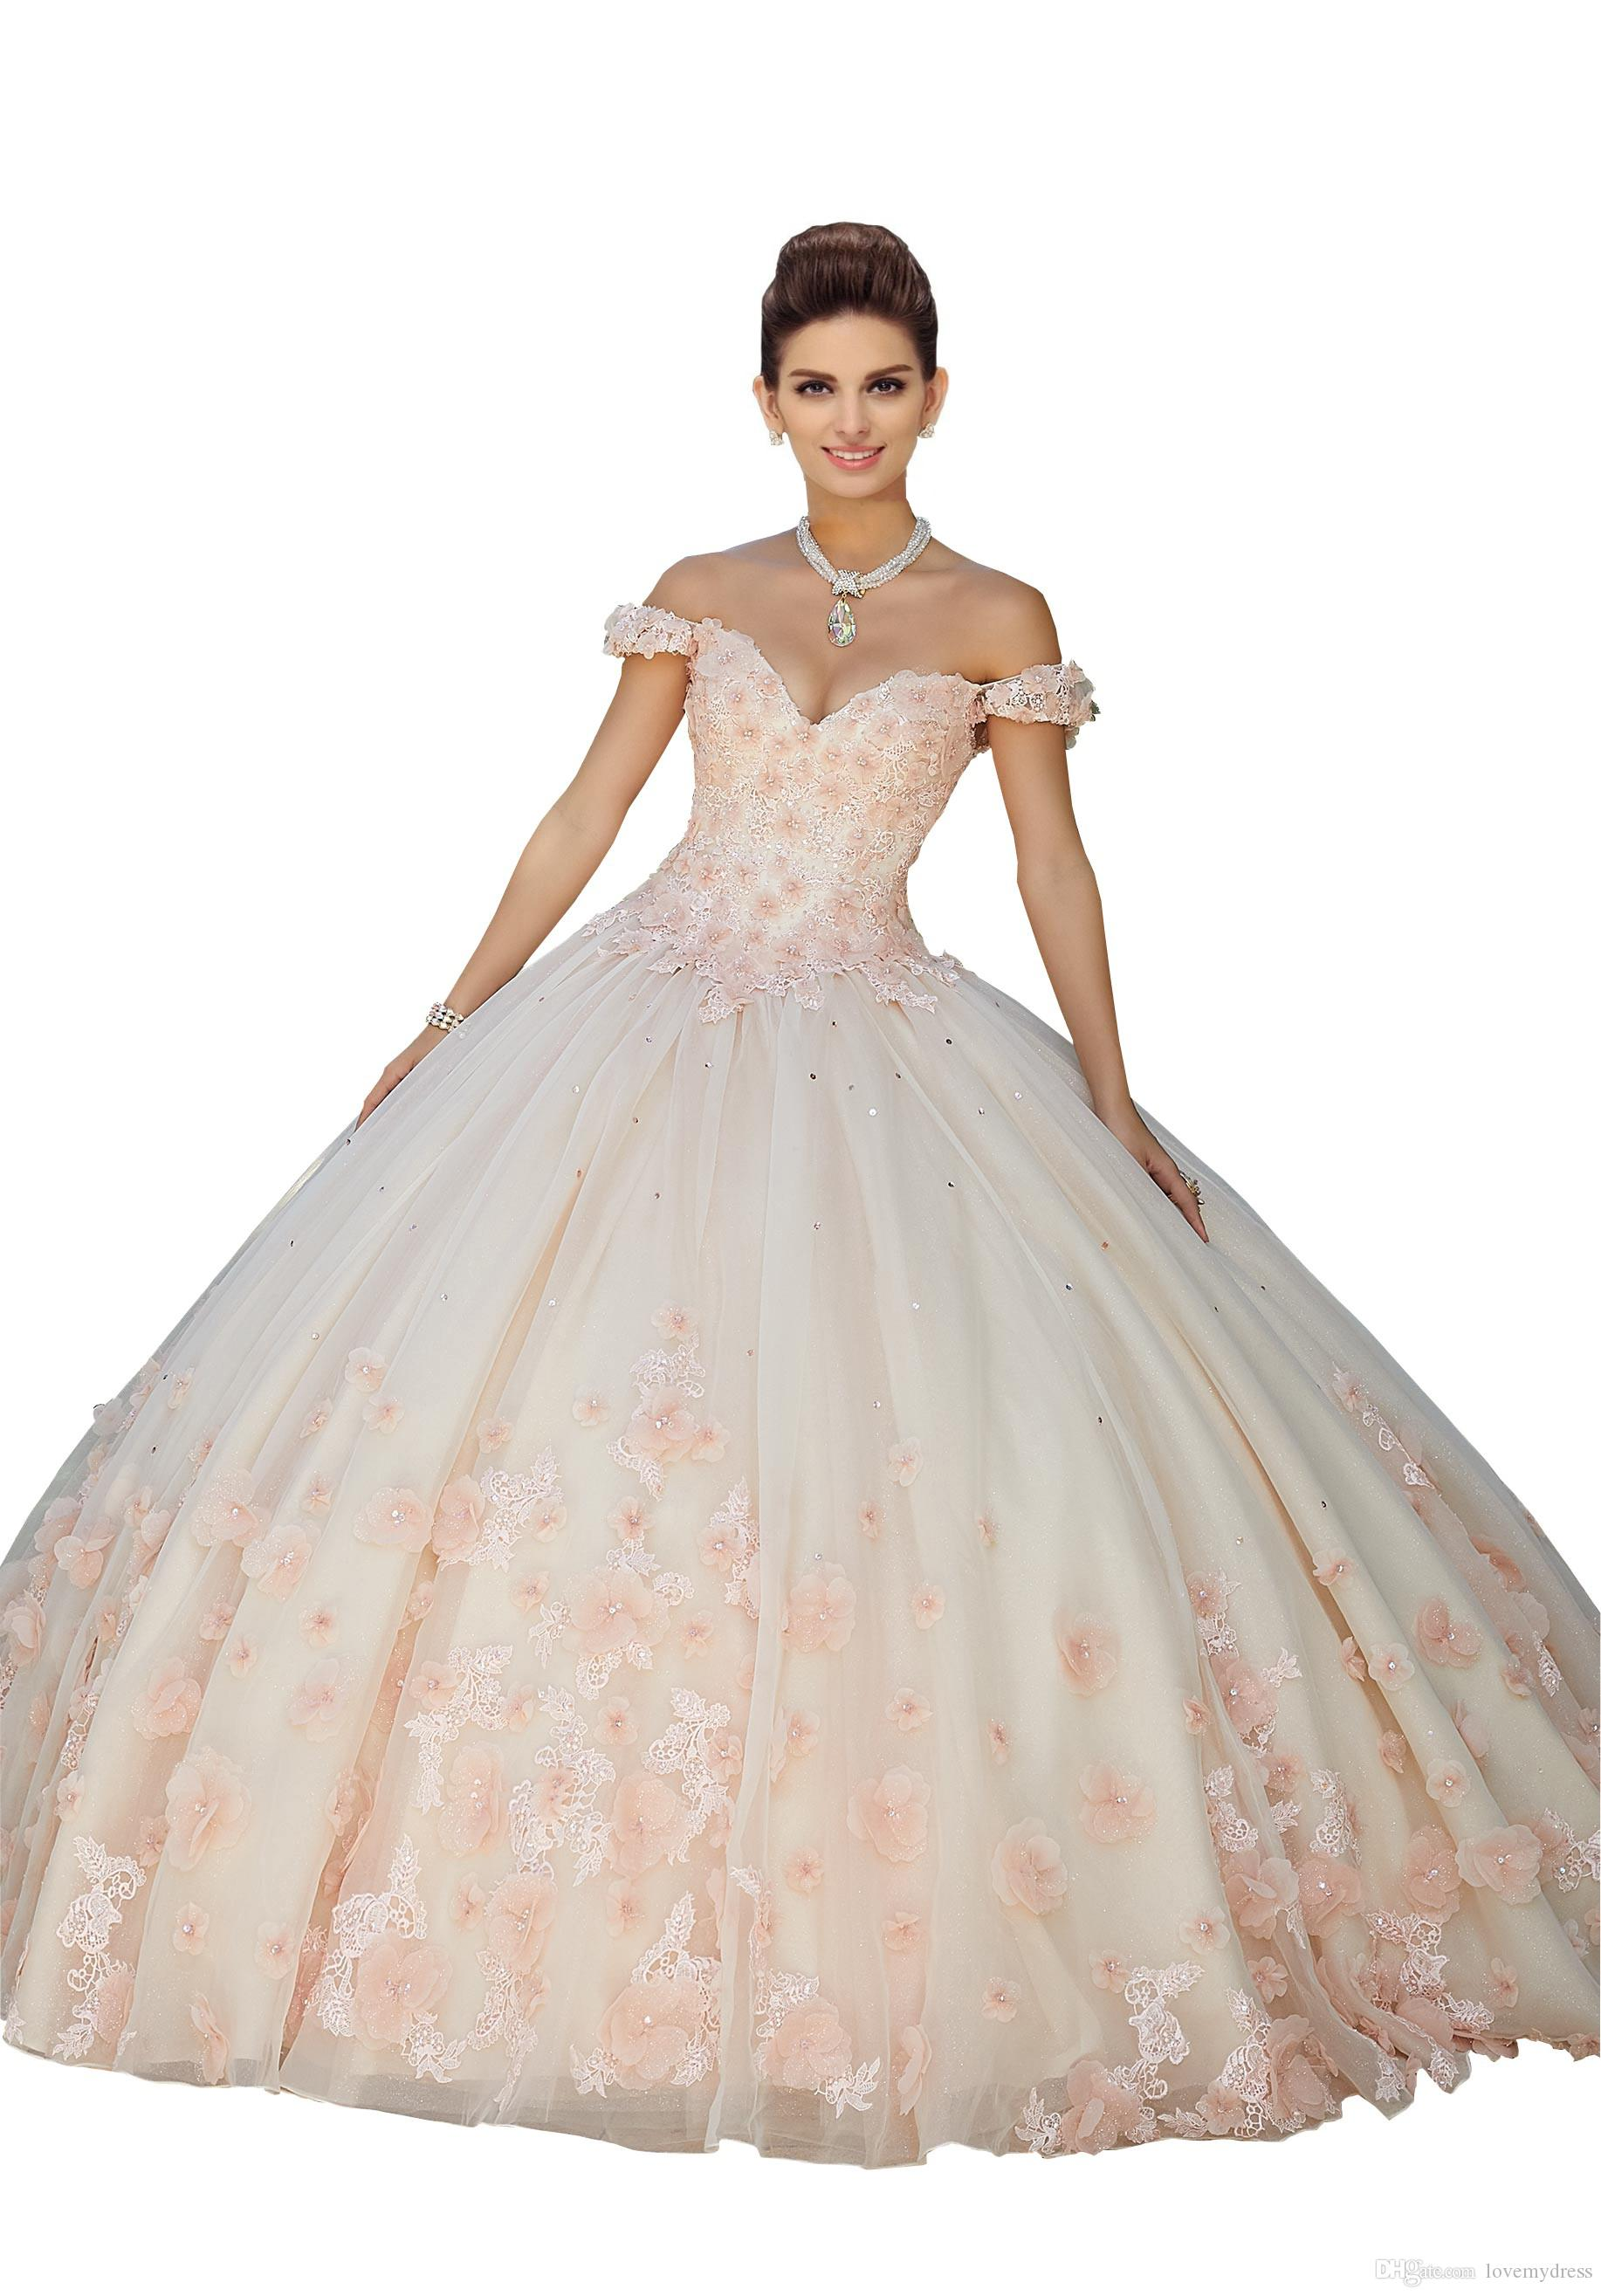 3d Flowers Lace Beaded Quinceanera Dresses Pink Ball Gowns Off The Shoulder Corset Back Tulle Sweet 16 Dress Vestidos 15 Anos Vestidos De Quinceanera